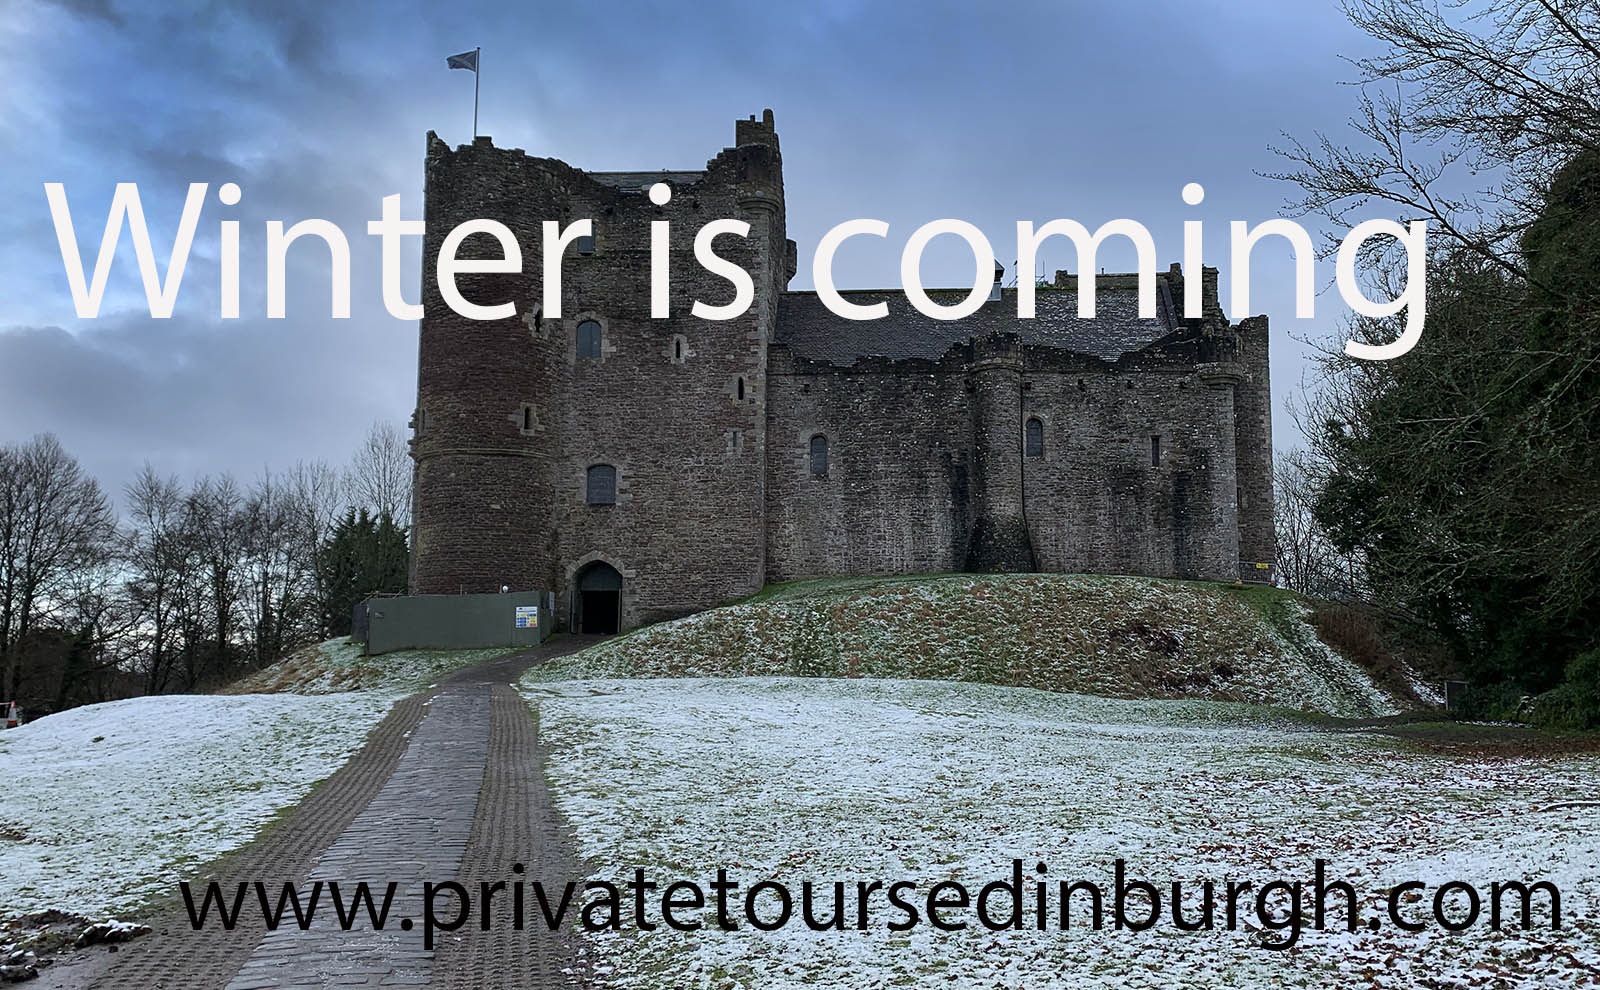 Filming has started on House of Dragon , the Game of Thrones prequel . George R R Martin also suggested that it might revisit countries that served as filming locations for Game of Thrones, including Scotland, Ireland , Iceland , Morocco, Malta and Spain. Our Game of Thrones tours to Doune Castle / Winterfell now run three times daily , at 10 am , 11 am and 12 pm . New tour – Craigh na Dun tour featuring Lallybroch , Craigh na Dun and Castle Leoch ( Doune Castle ) . NEWS – Doune Castle , in Game of Thrones and Castle Leoch in Outlander is now open. Phone +44 131 549 9785 / +44+7305-294773 for more details and bookings or contact us online .